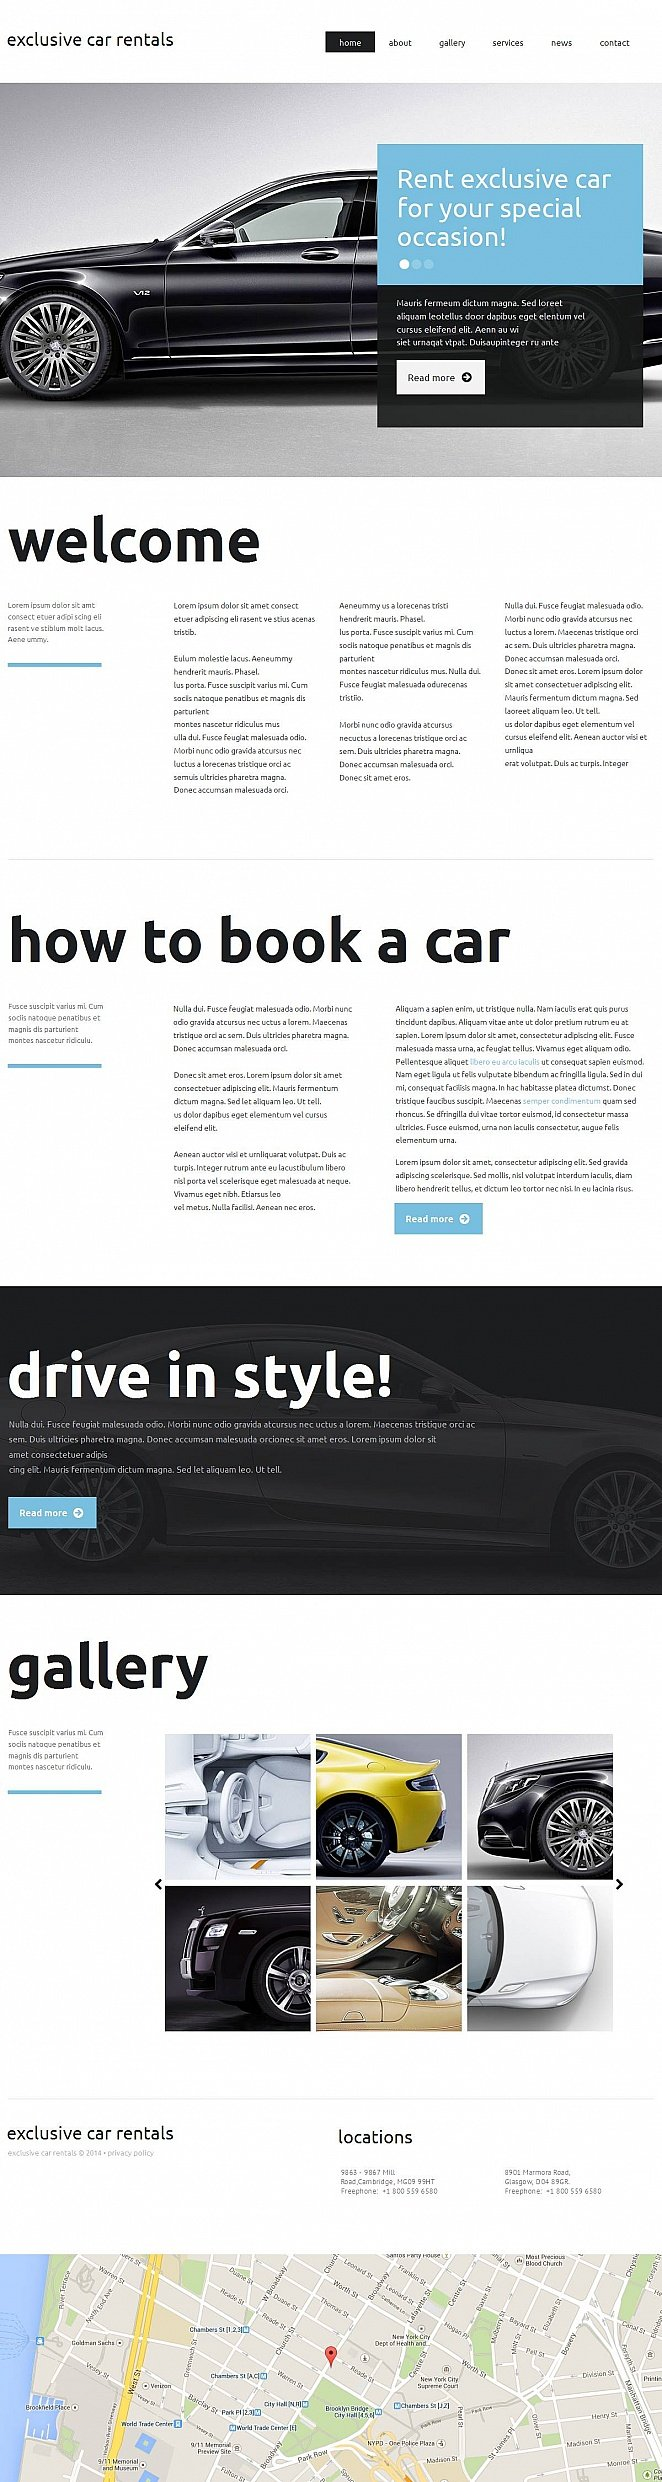 Website Template for Car Rental Business - image